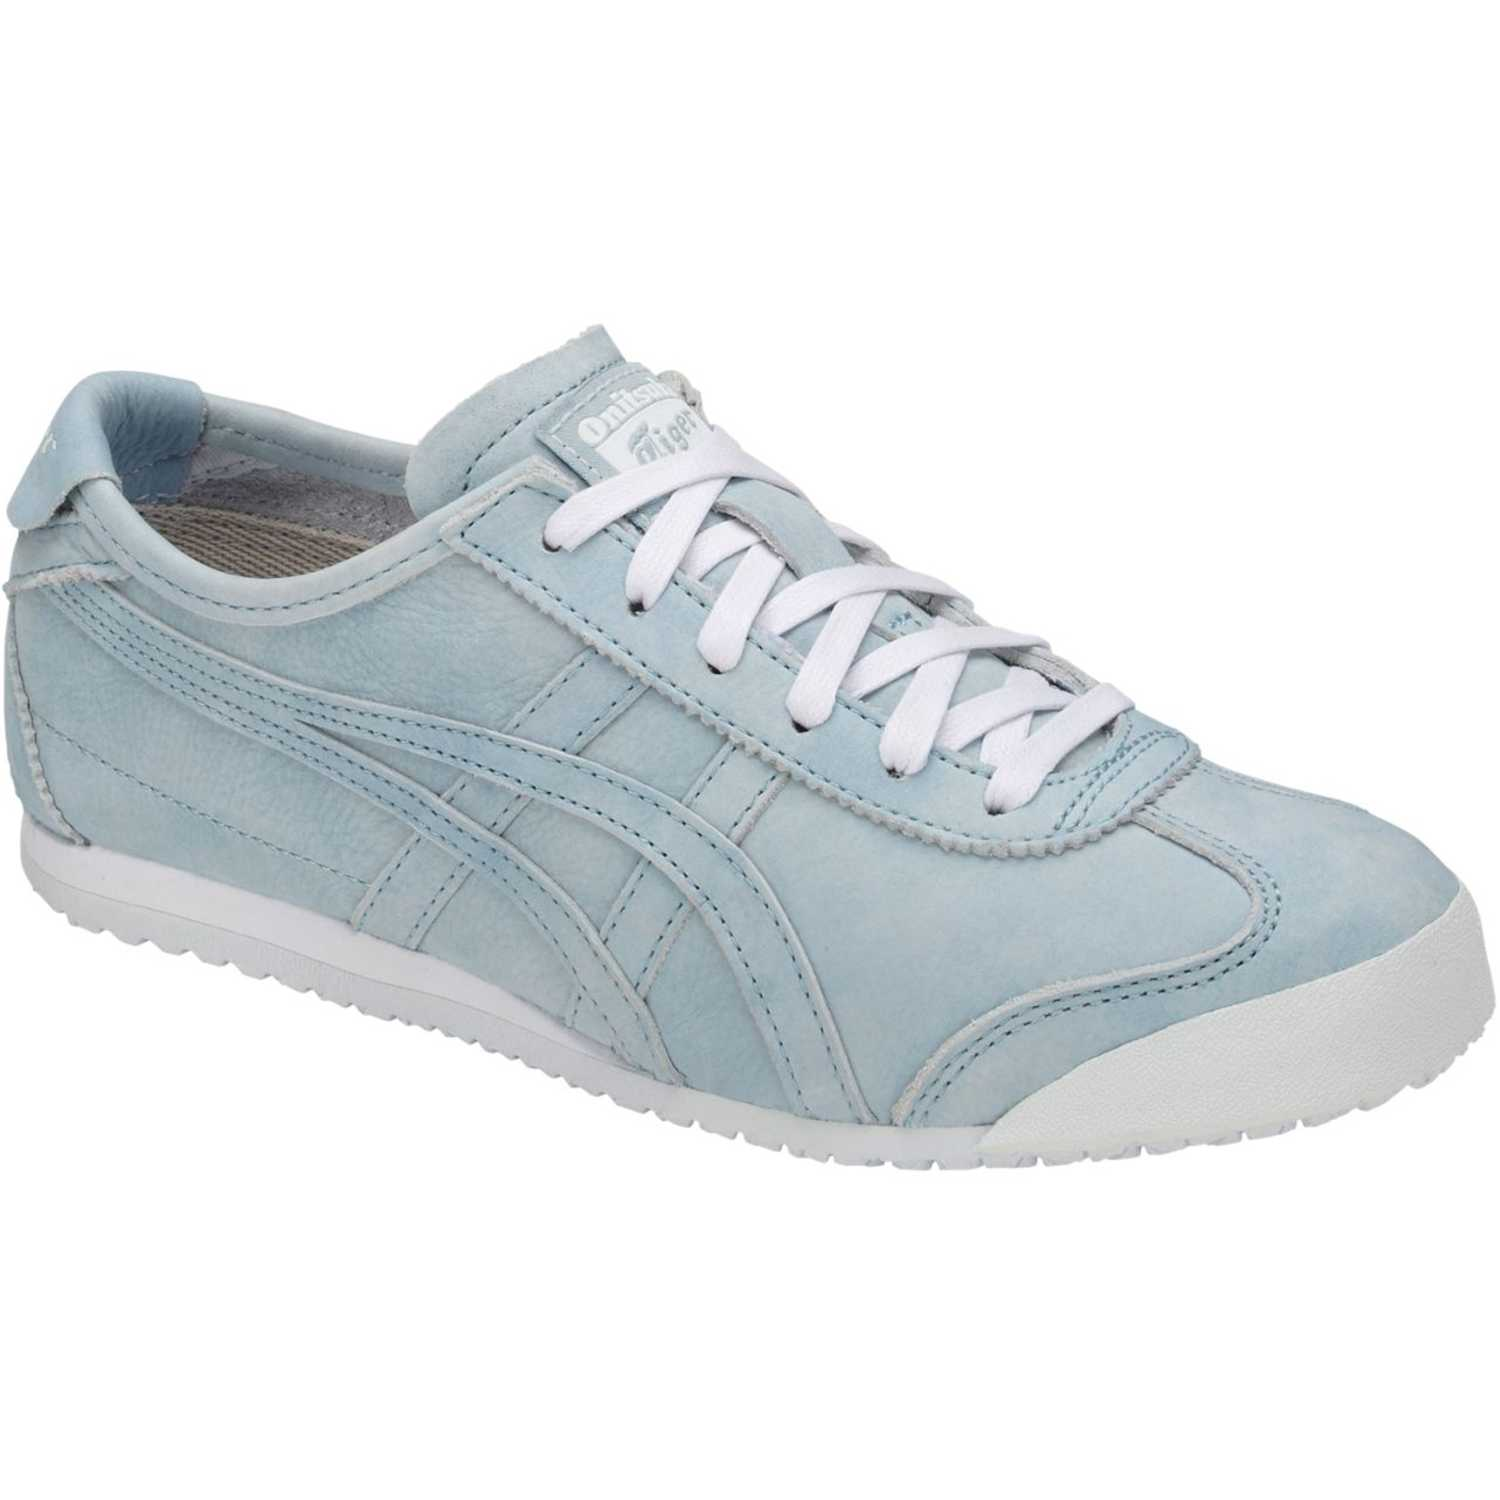 Asics mexico 66 Celeste / blanco Walking